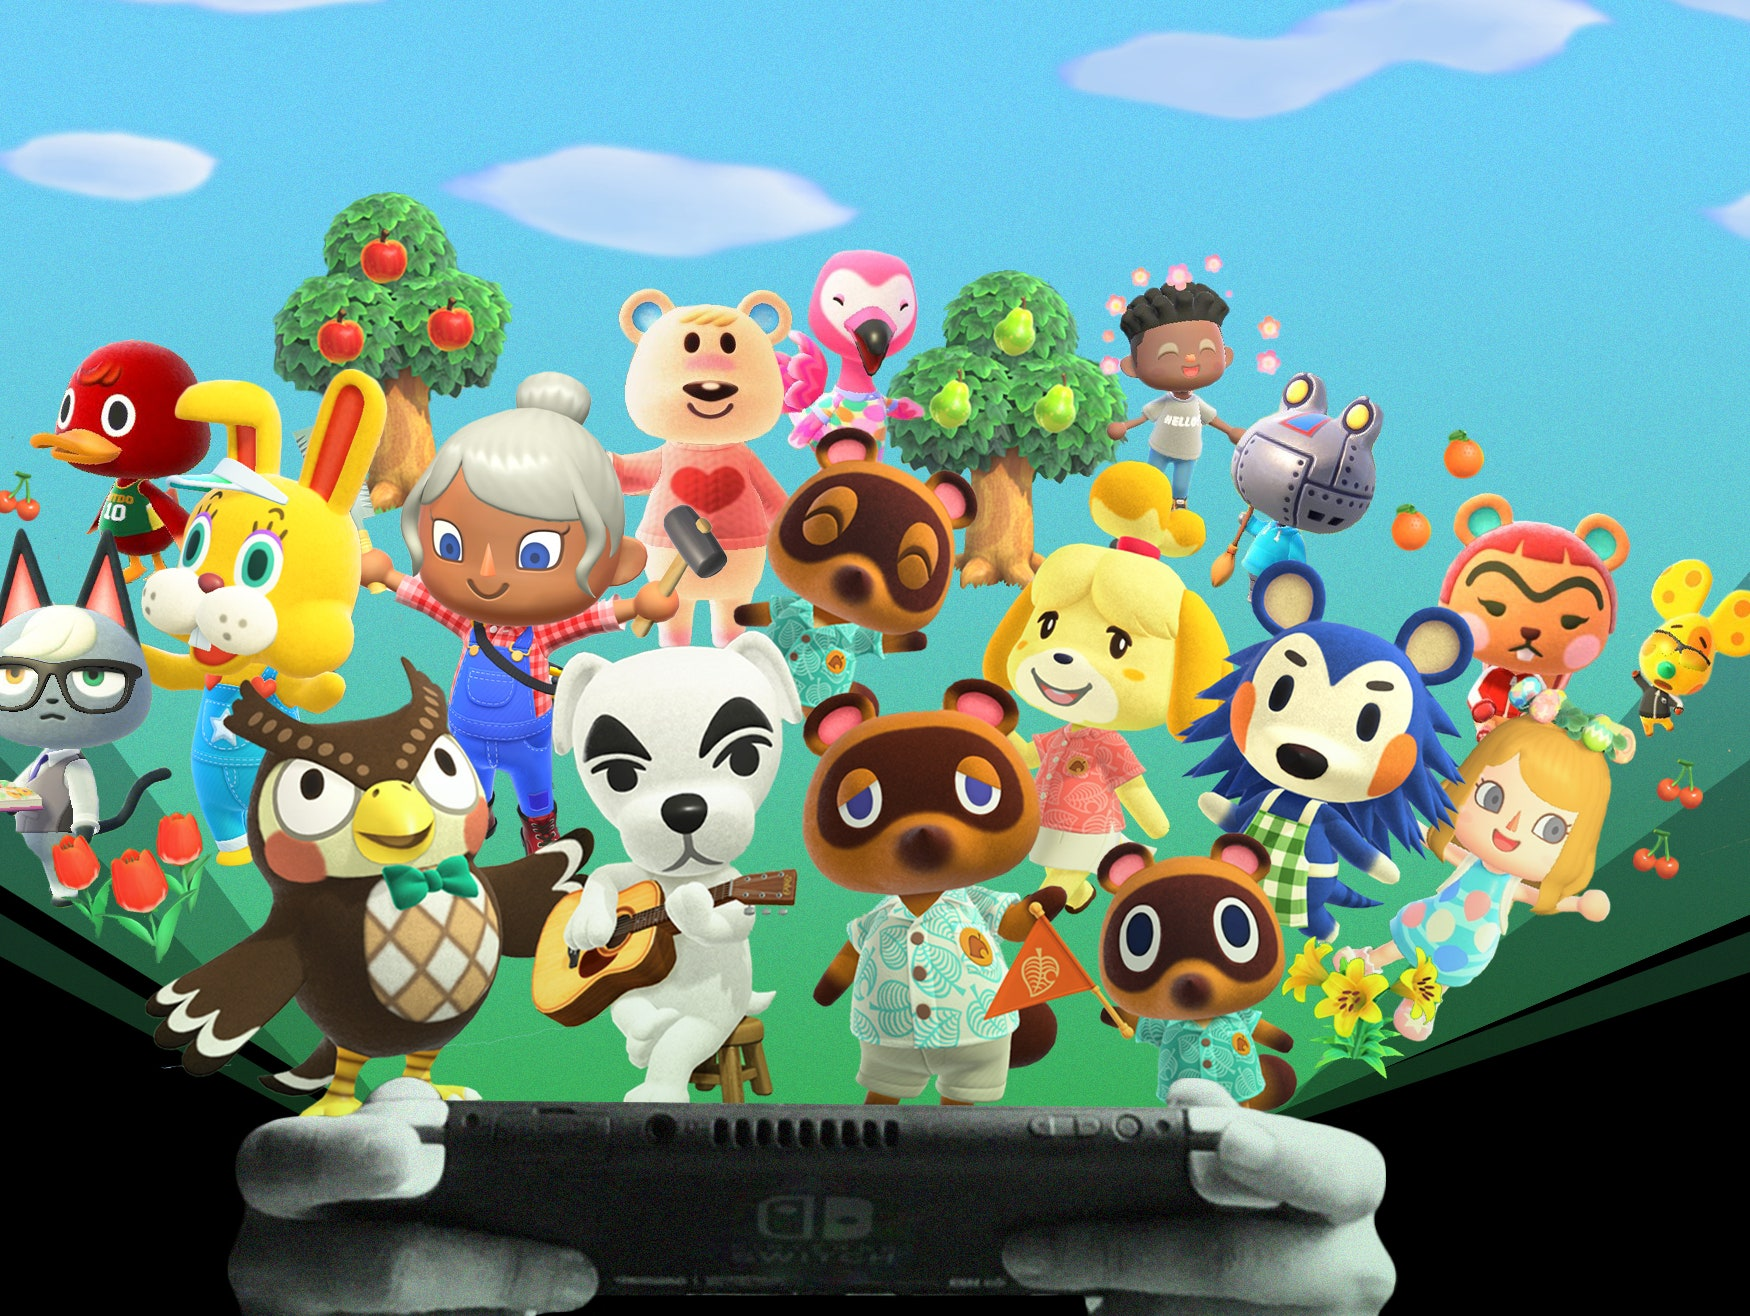 Animal Crossing New Horizons Is Now The 2nd Best Selling Nintendo